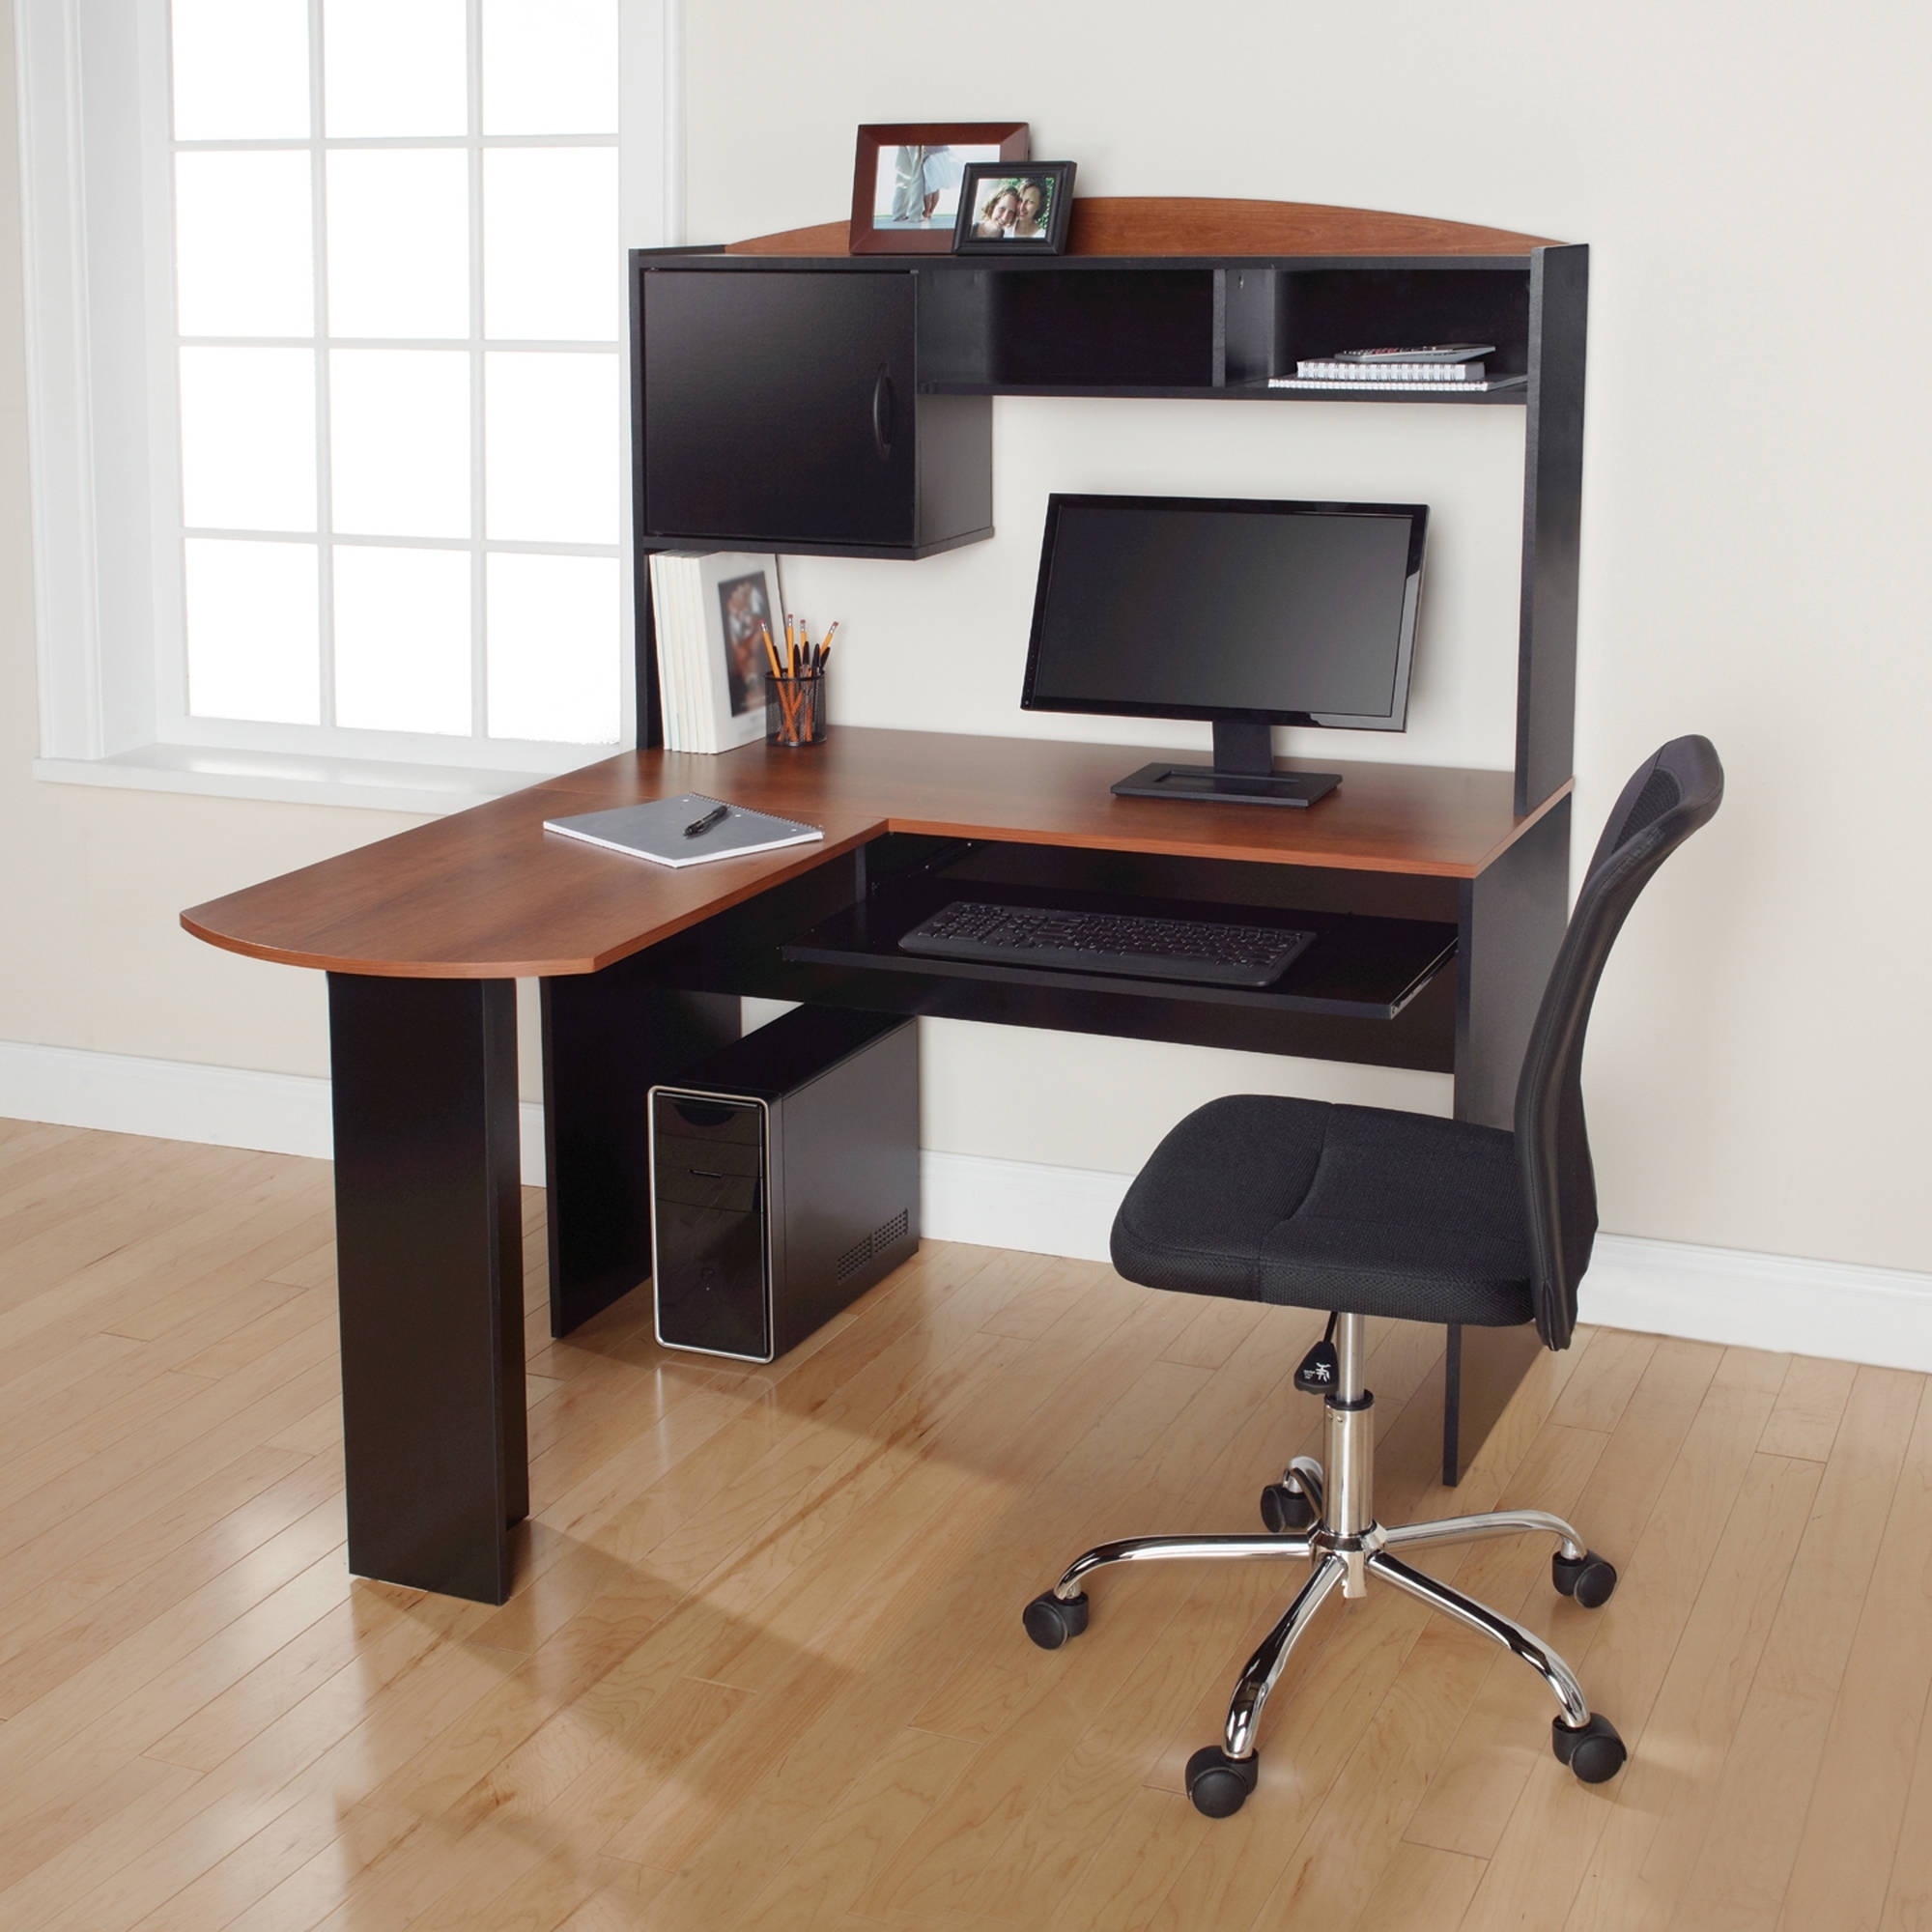 Top 80 Unbeatable Wayfair Home Office Furniture Corner Ladder Desk For Fashionable Computer Desks At Wayfair (View 17 of 20)